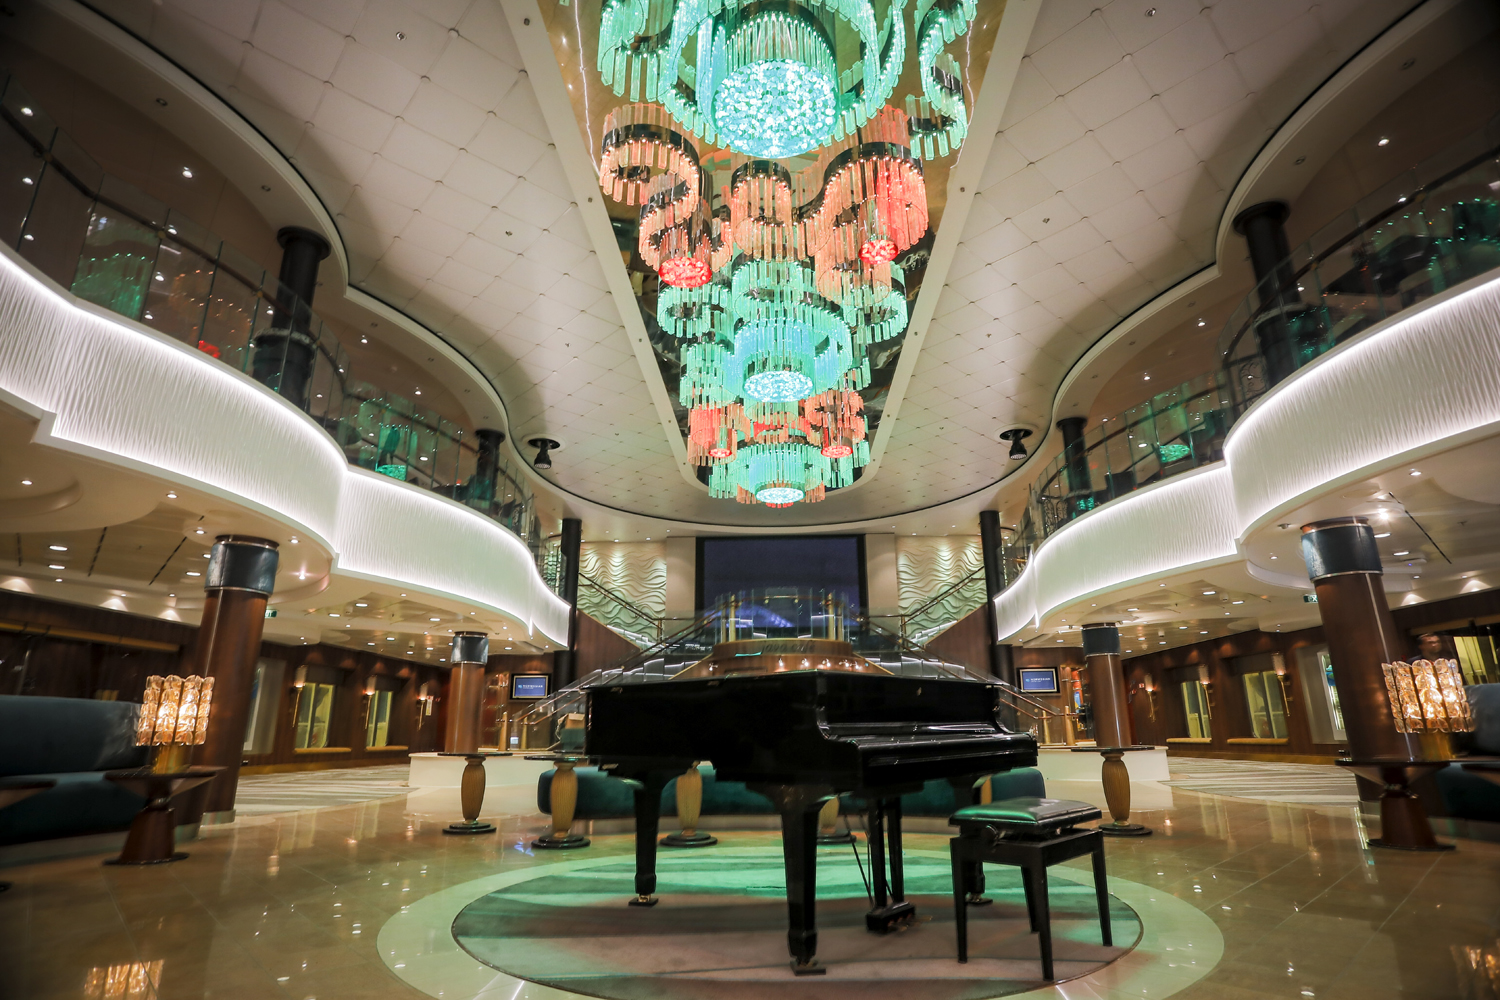 Atrium Design And Decoration Of Norwegian Jade Freshens Up For Summer Season Recommend